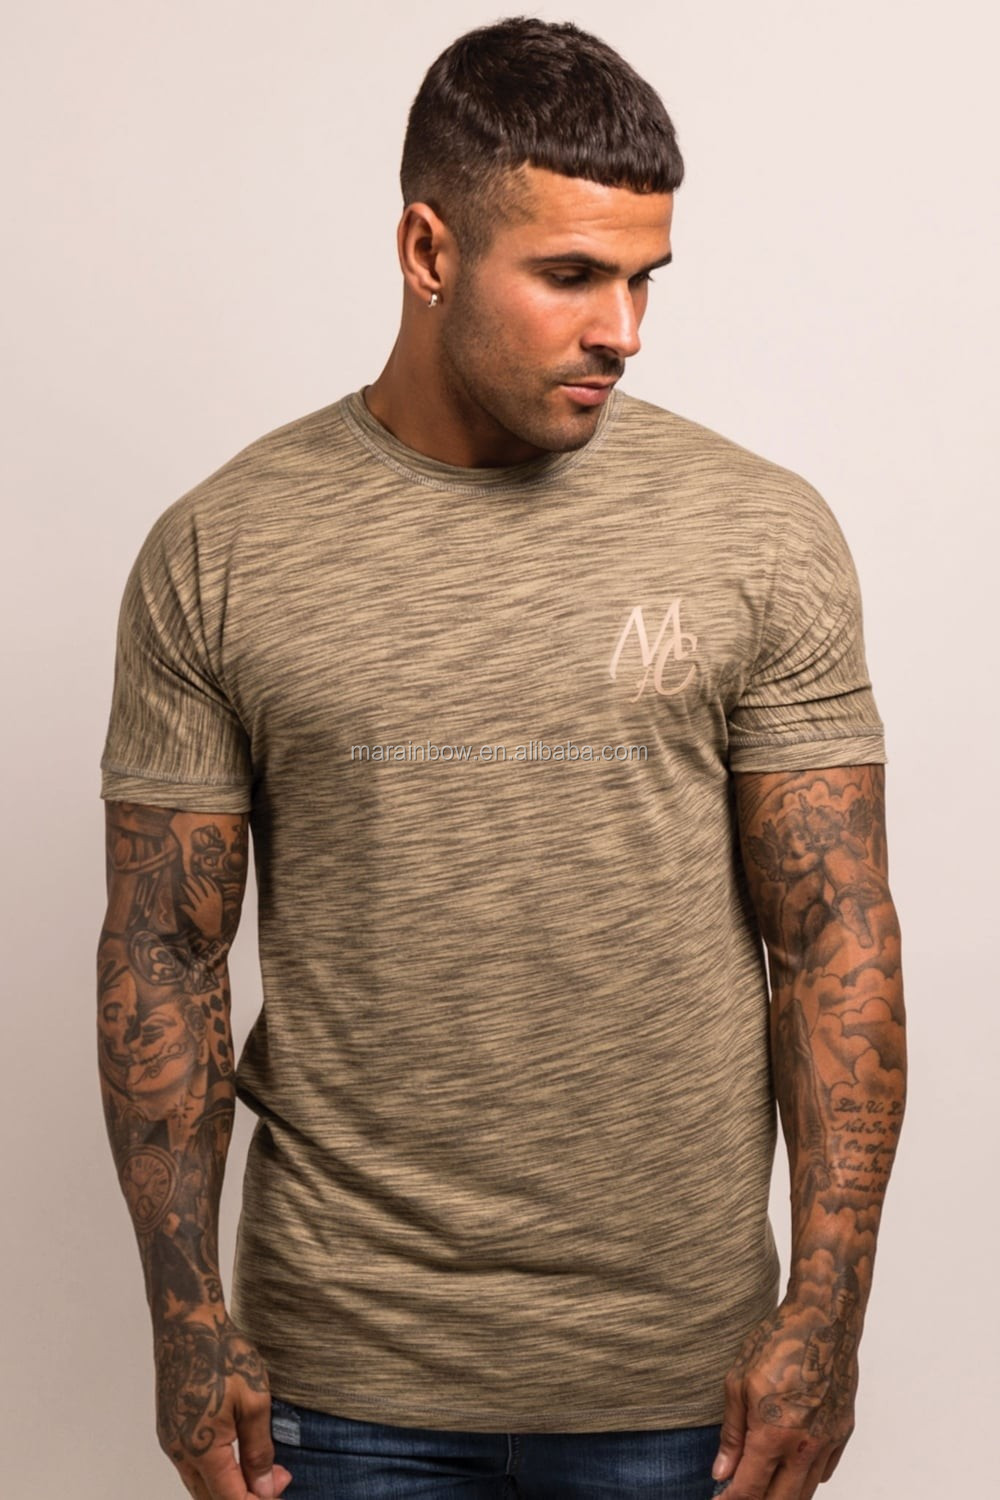 Premium Space Dye Short Sleeve Gym Fitted T Shirt Heather Polyester Spandex Dry Fit Custom T Shirt Wholesale Fitness T Shirt